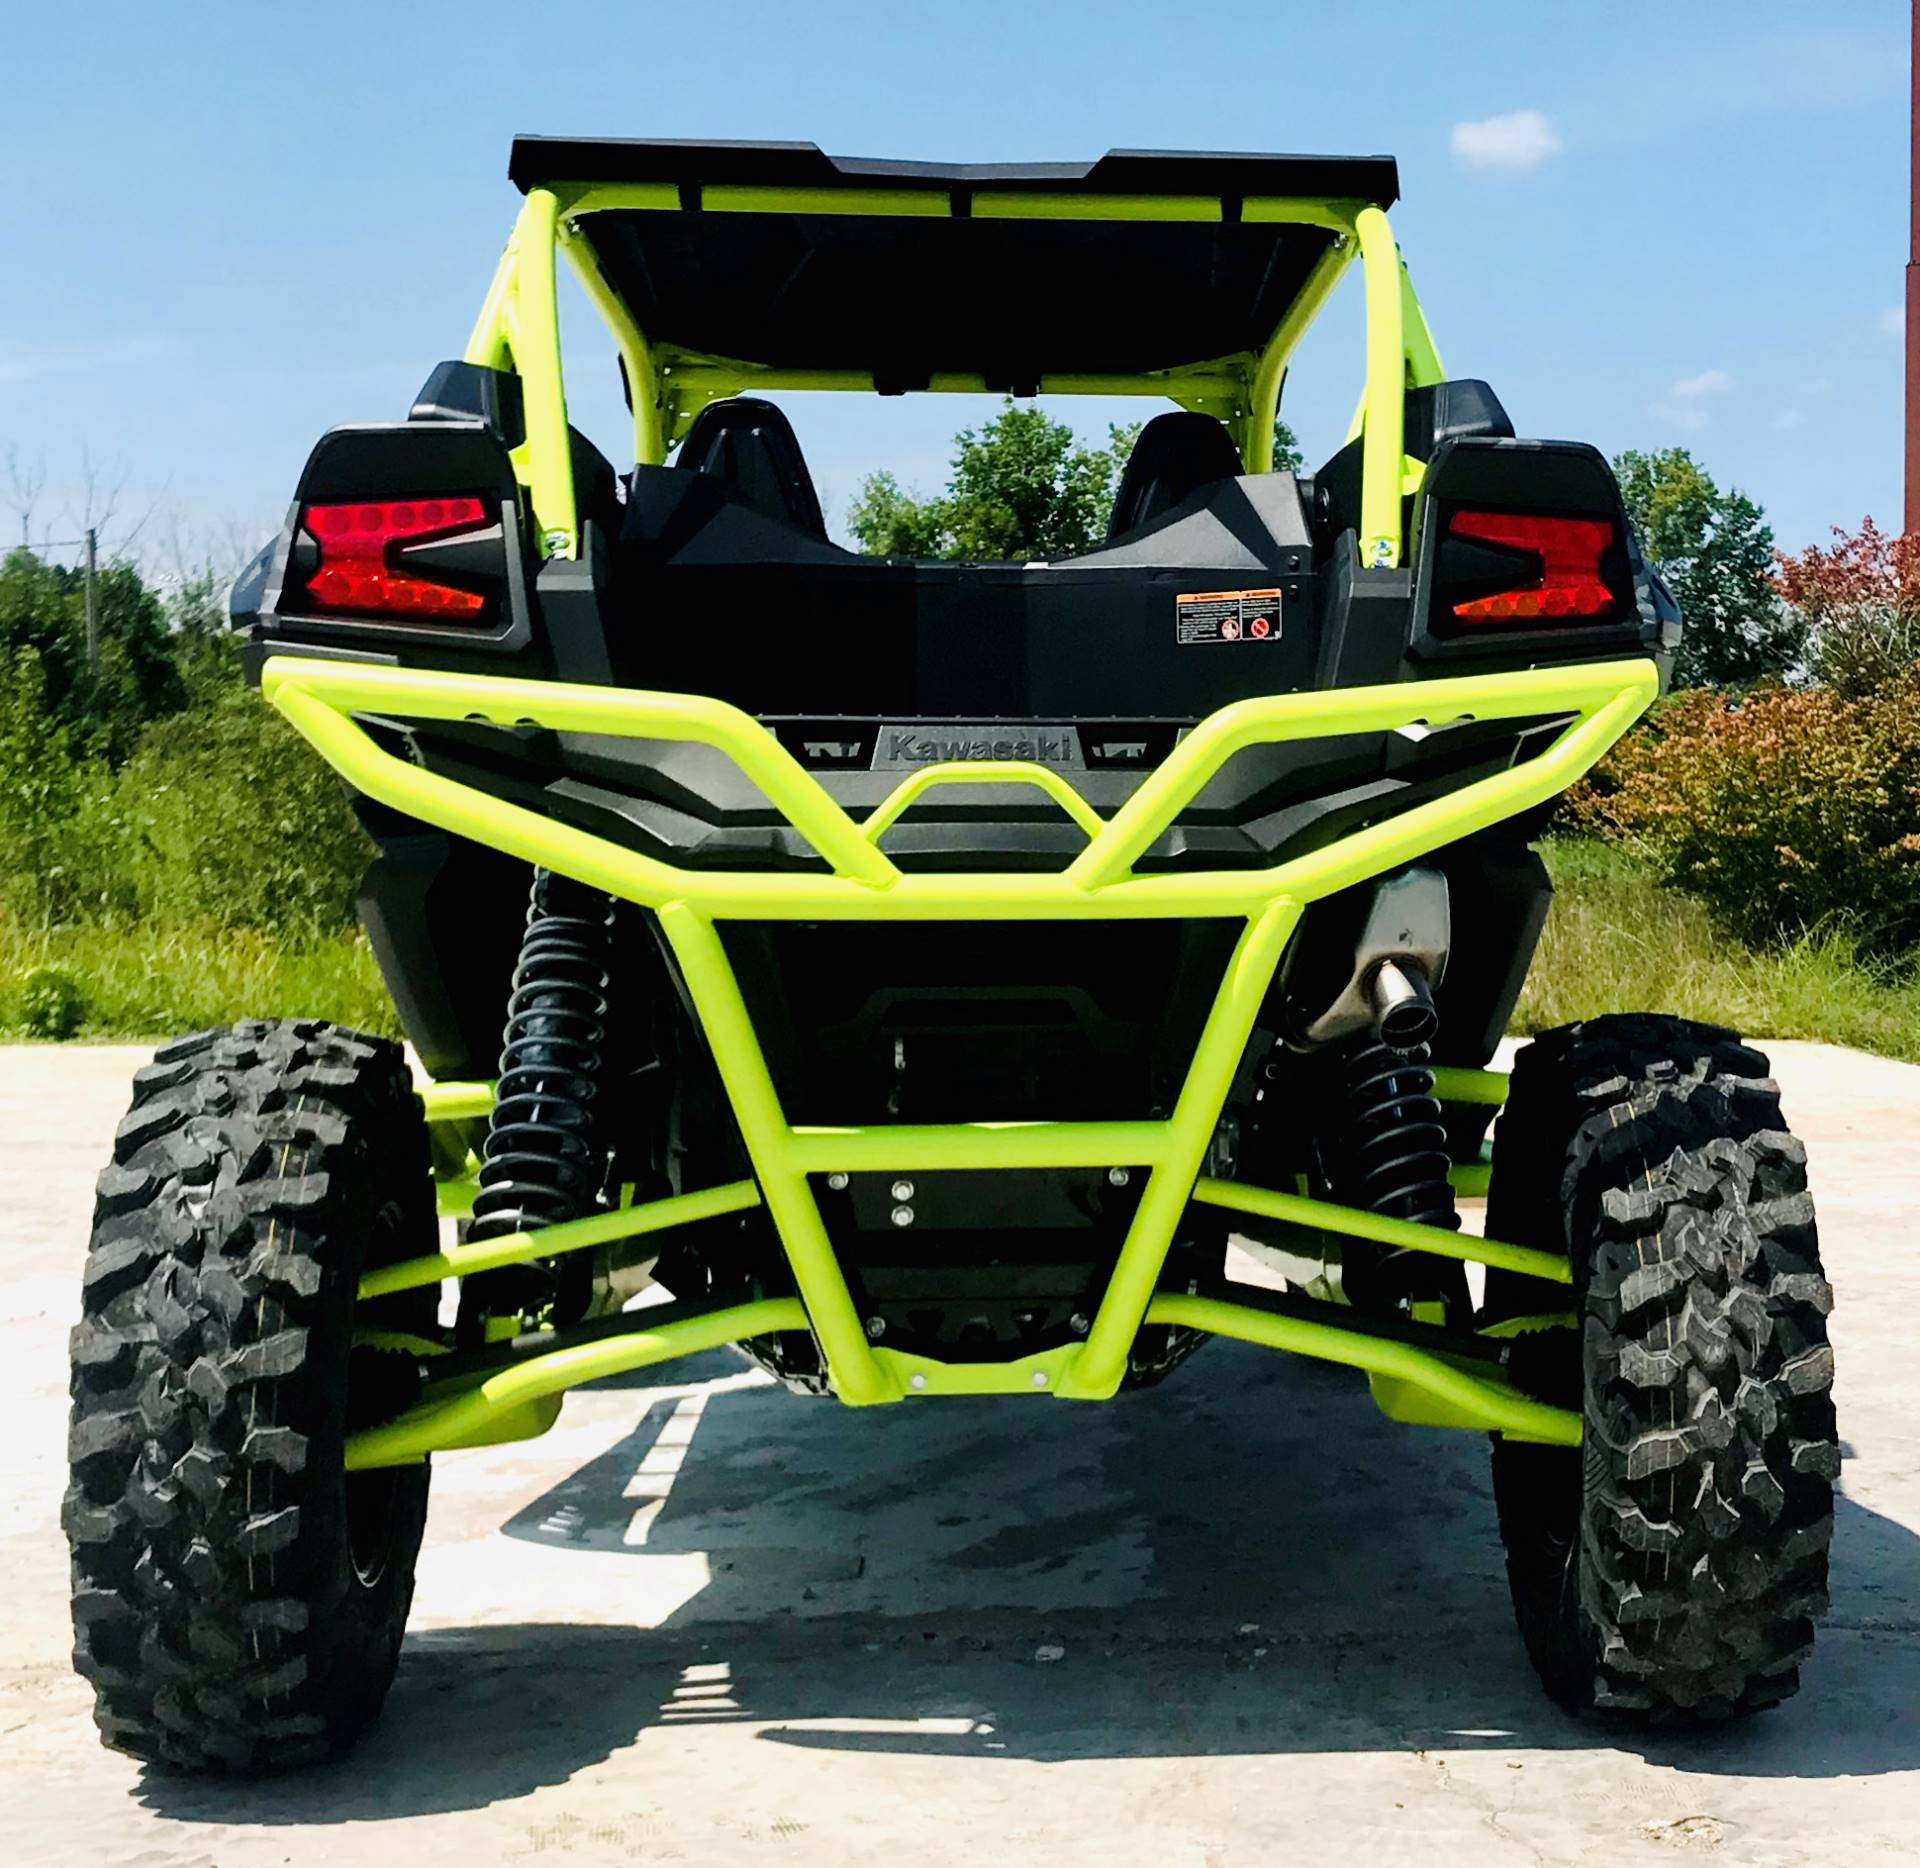 2021 Kawasaki Teryx KRX 1000 Trail Edition in Cambridge, Ohio - Photo 7